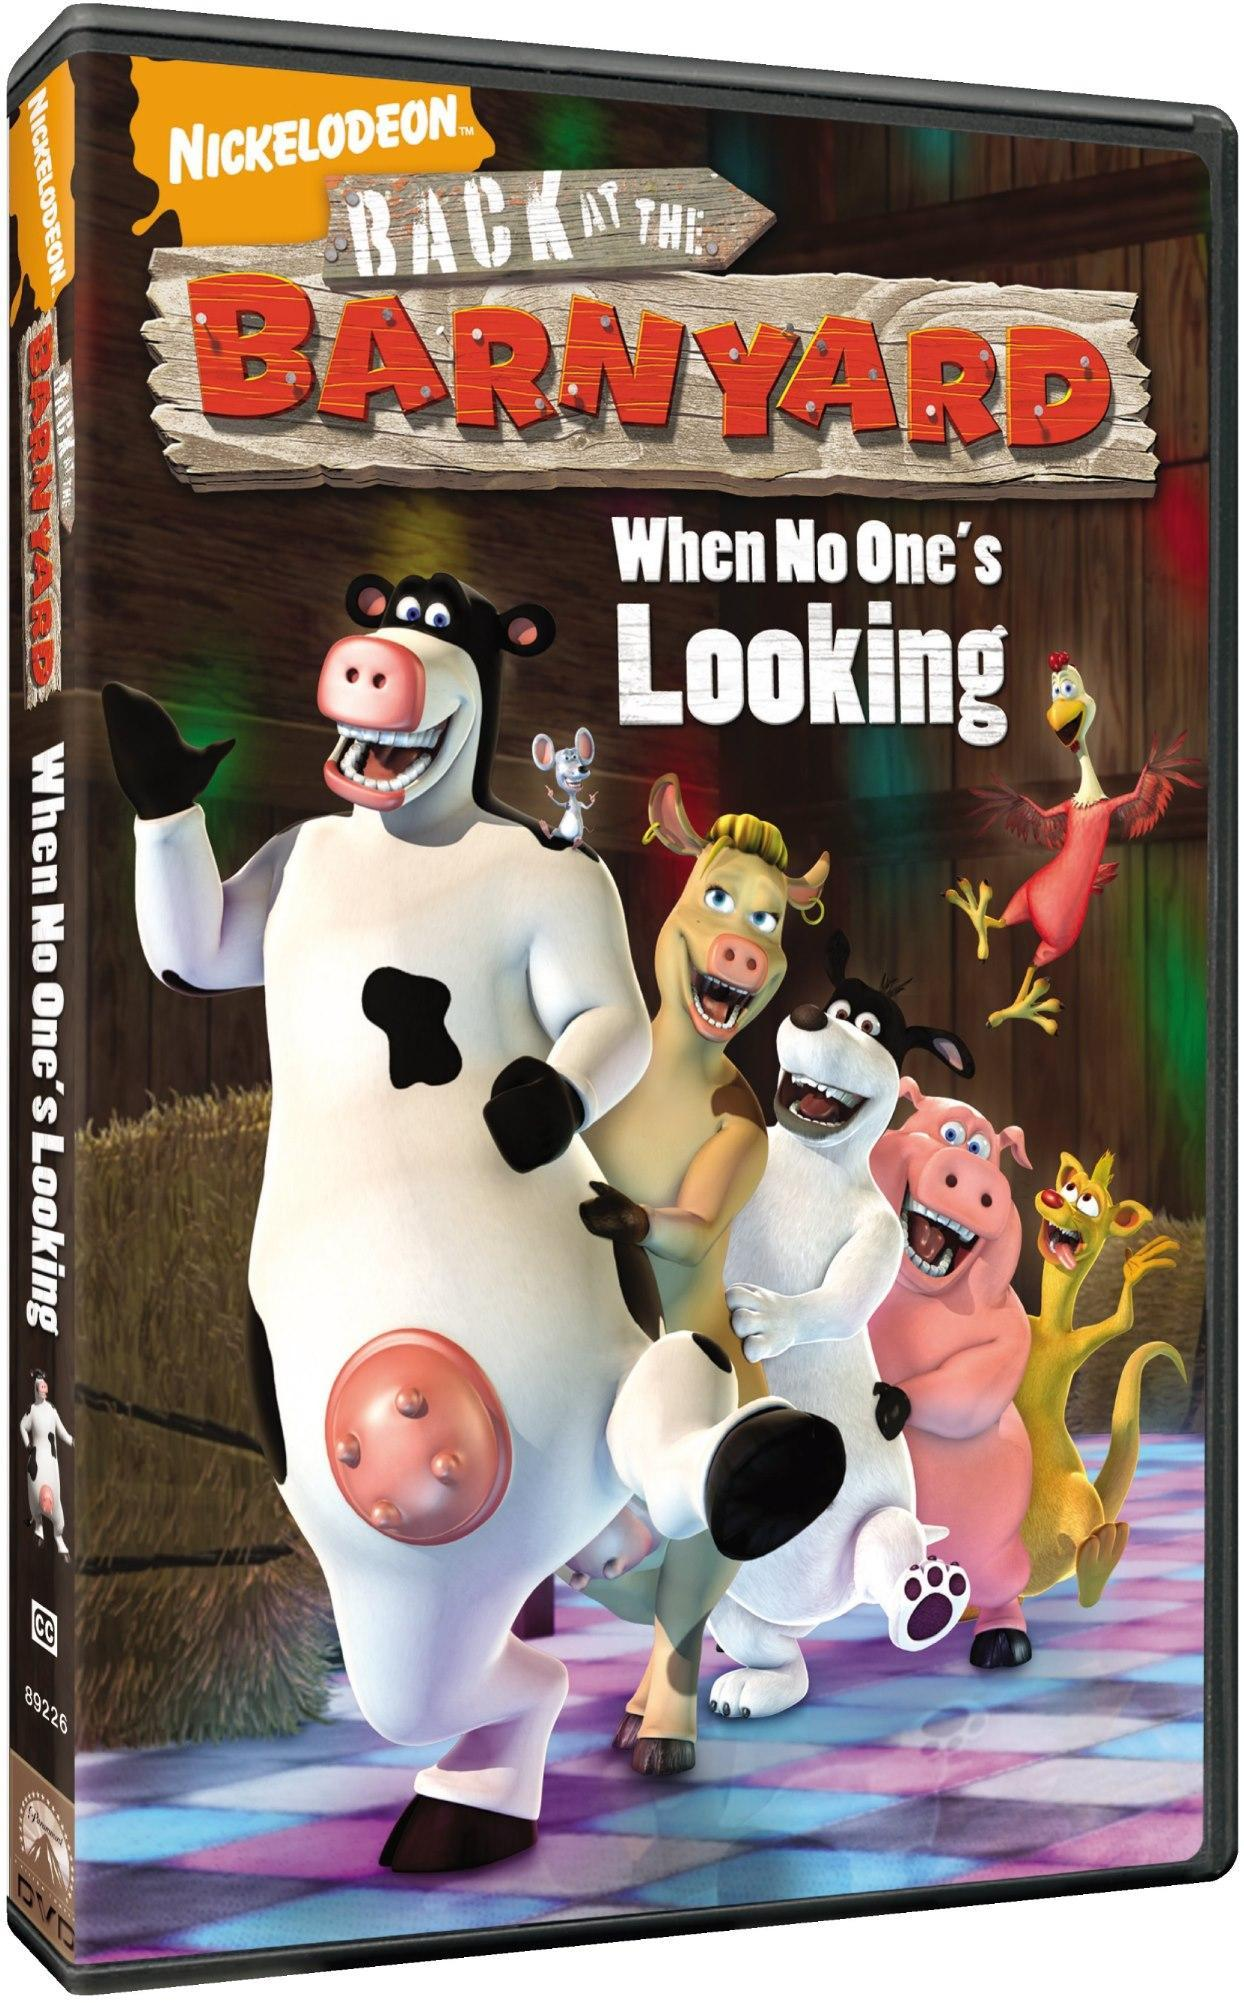 """""""Back at the Barnyard: When No One's Looking"""" DVD Review ..."""